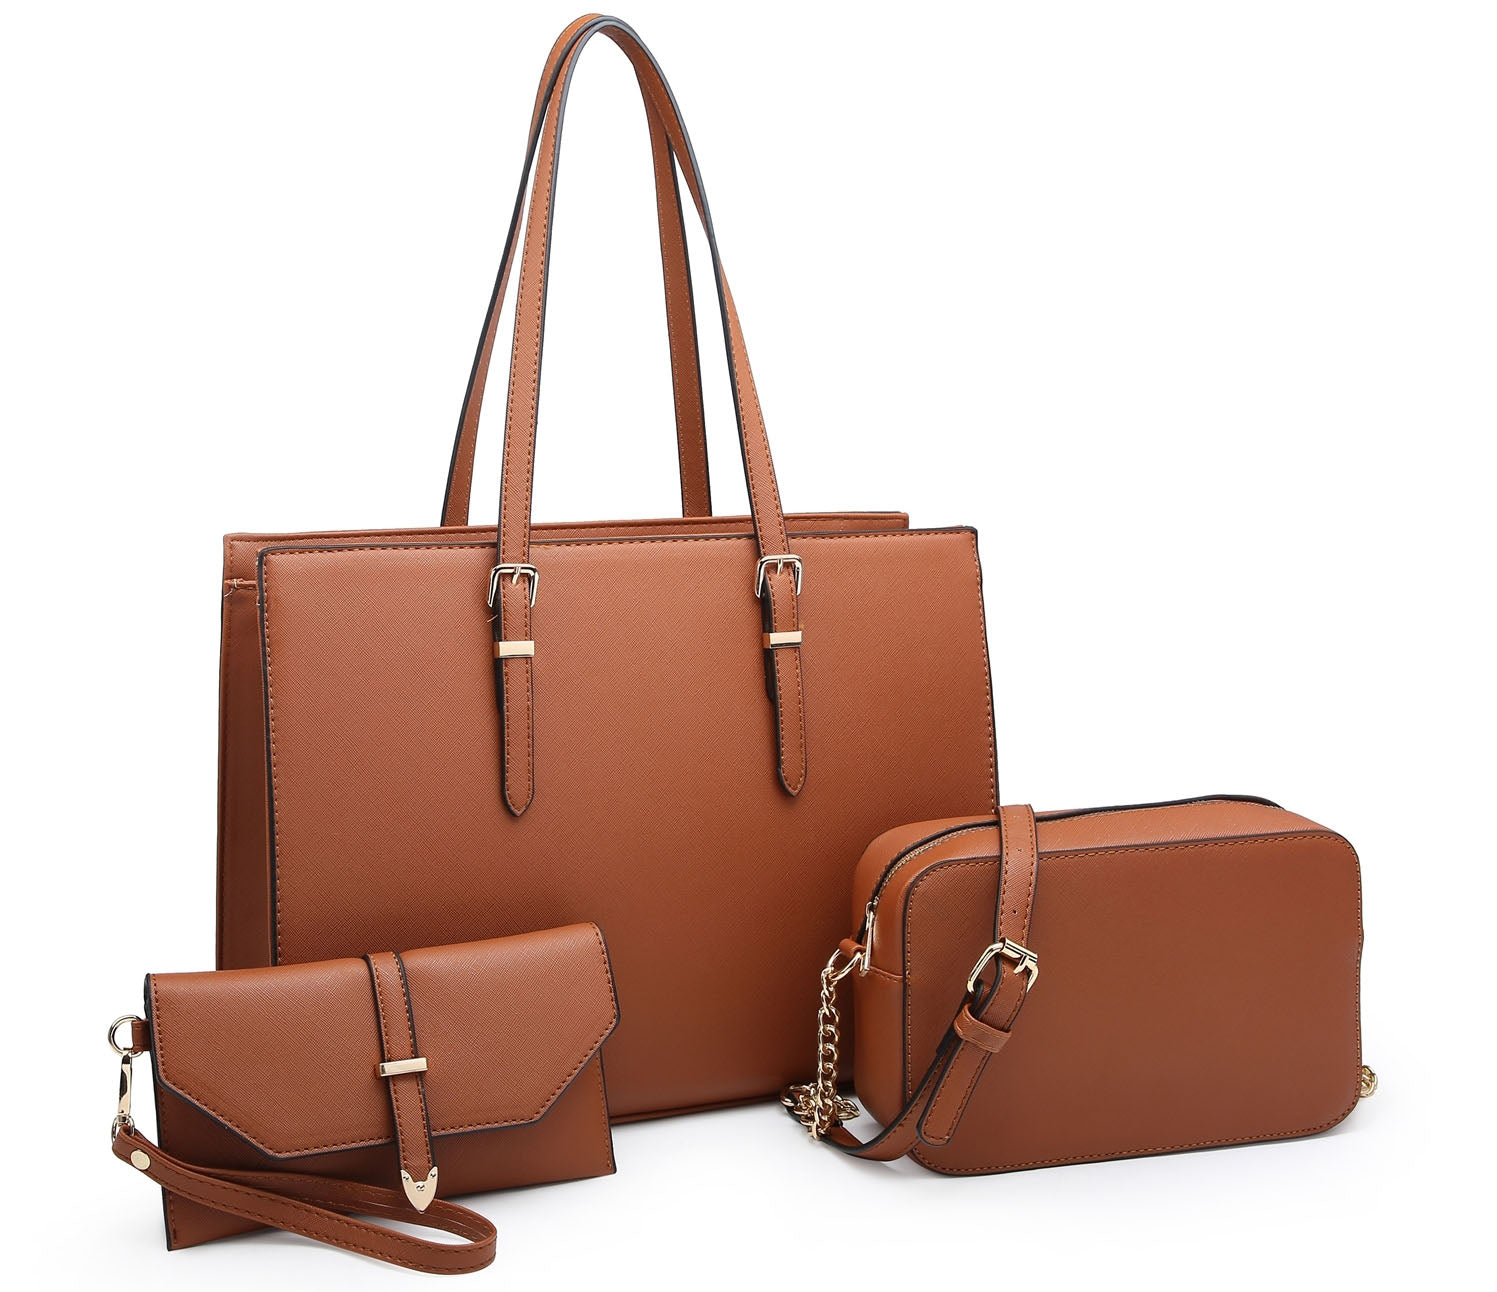 LARGE BROWN TOTE HANDBAG SET WITH PURSE AND CHAIN CROSSBODY BAG